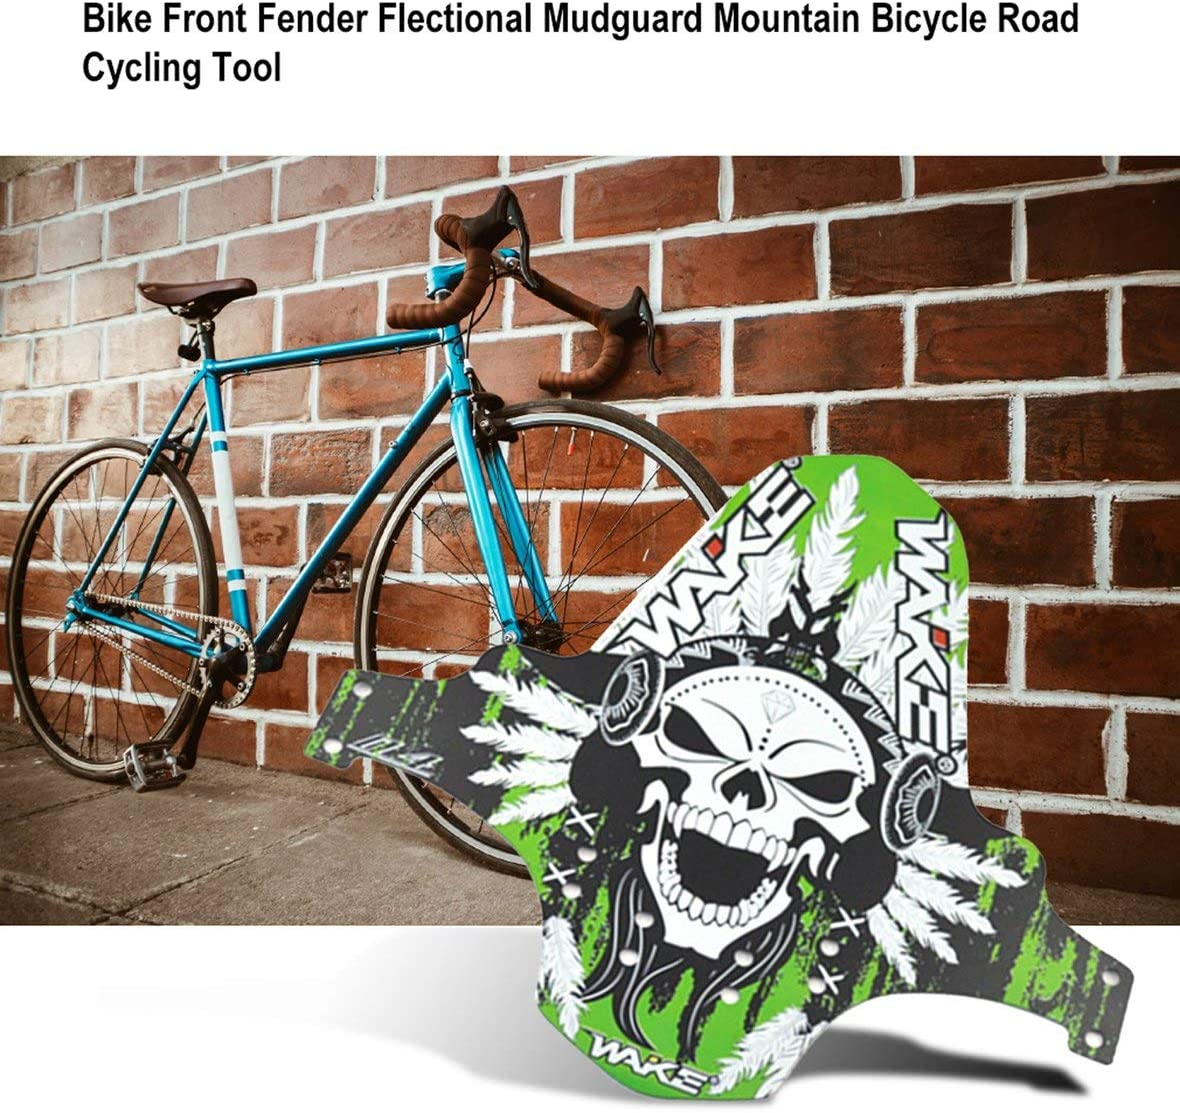 Bike MTB Front Fender Flectional Mudguard Set Mountain Bicycle Road Cycling Tool